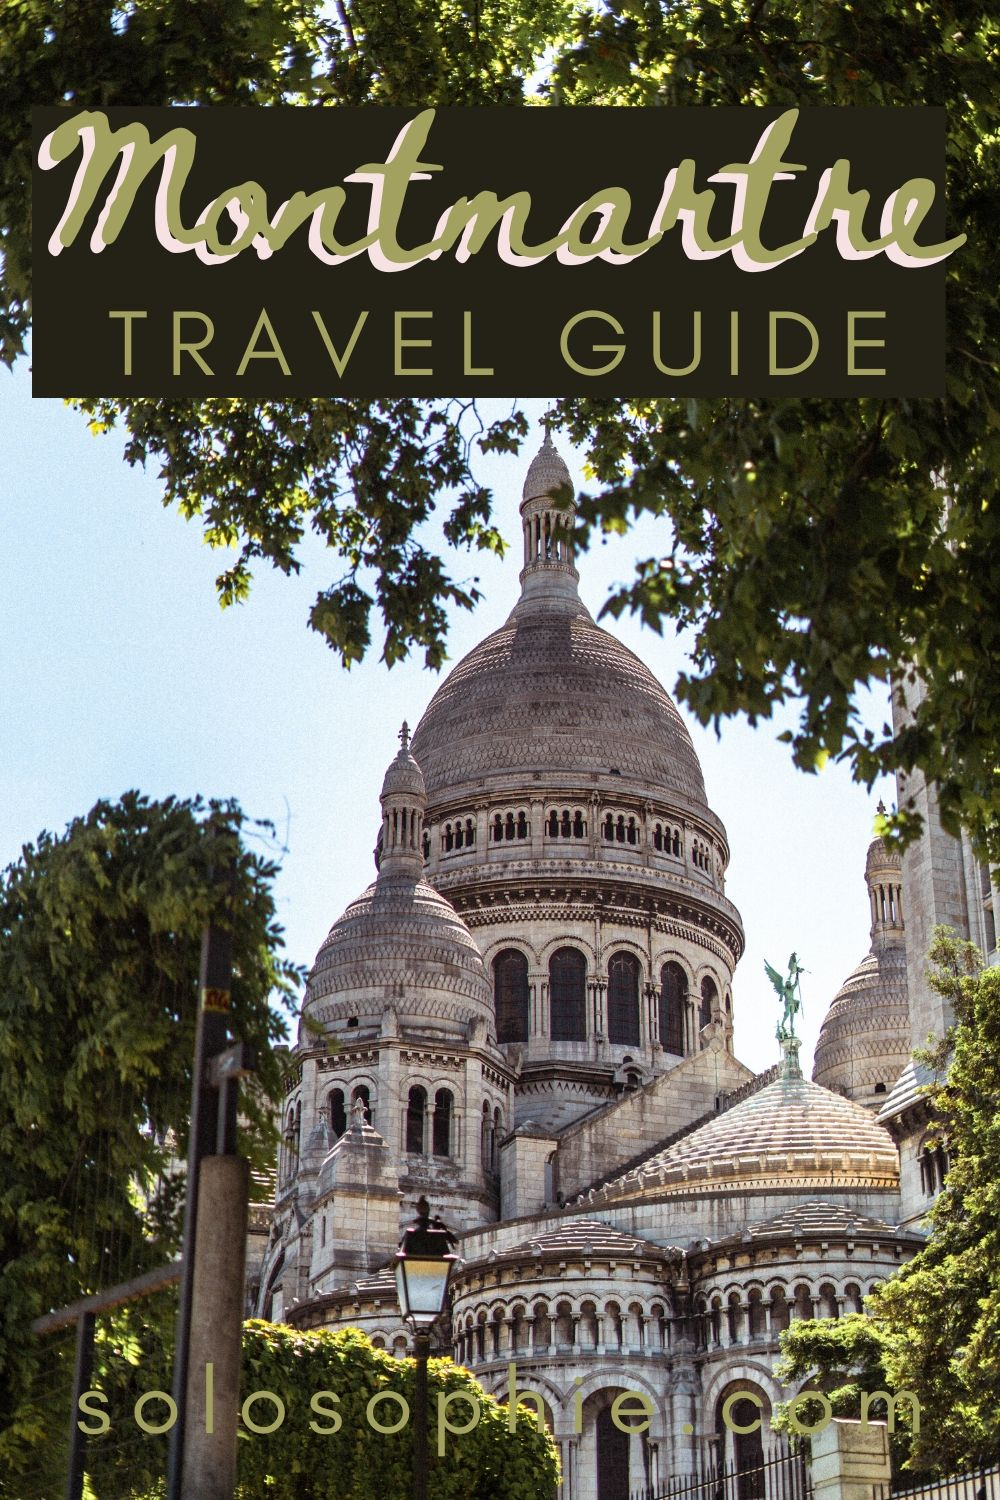 Montmartre guide: Looking for the best things to do in Montmartre? Here's a guide to the best of the 18th arrondissement